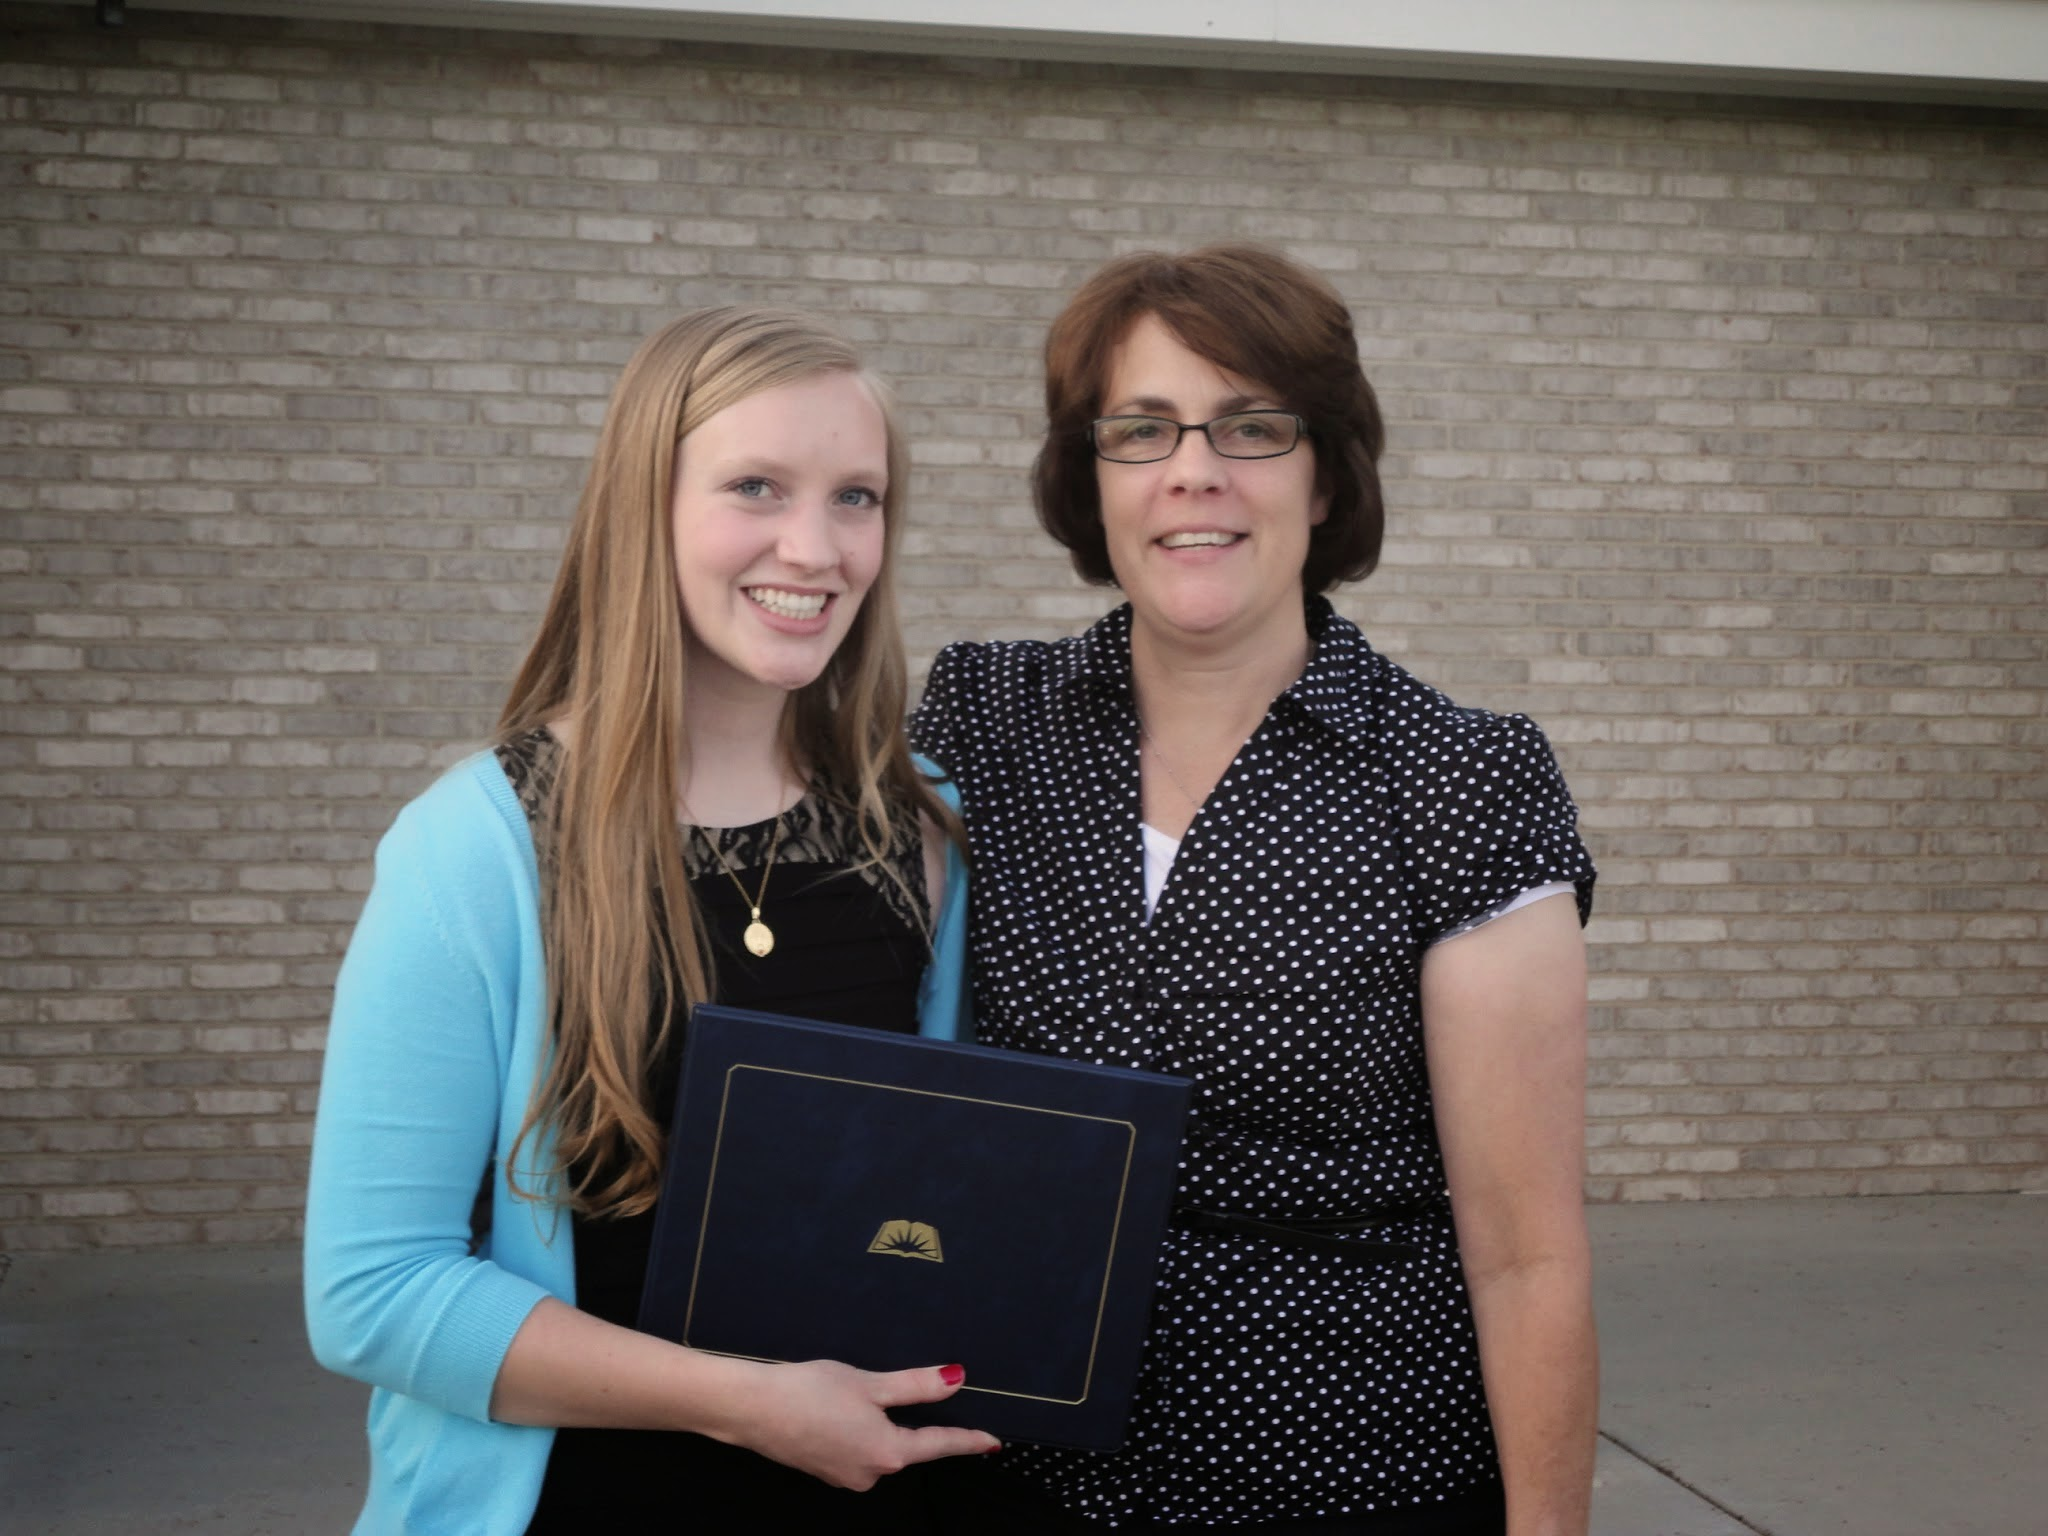 I graduated from seminary in Utah, and of course had to take a photo with my mother. I moved to Utah for my senior year of high school.